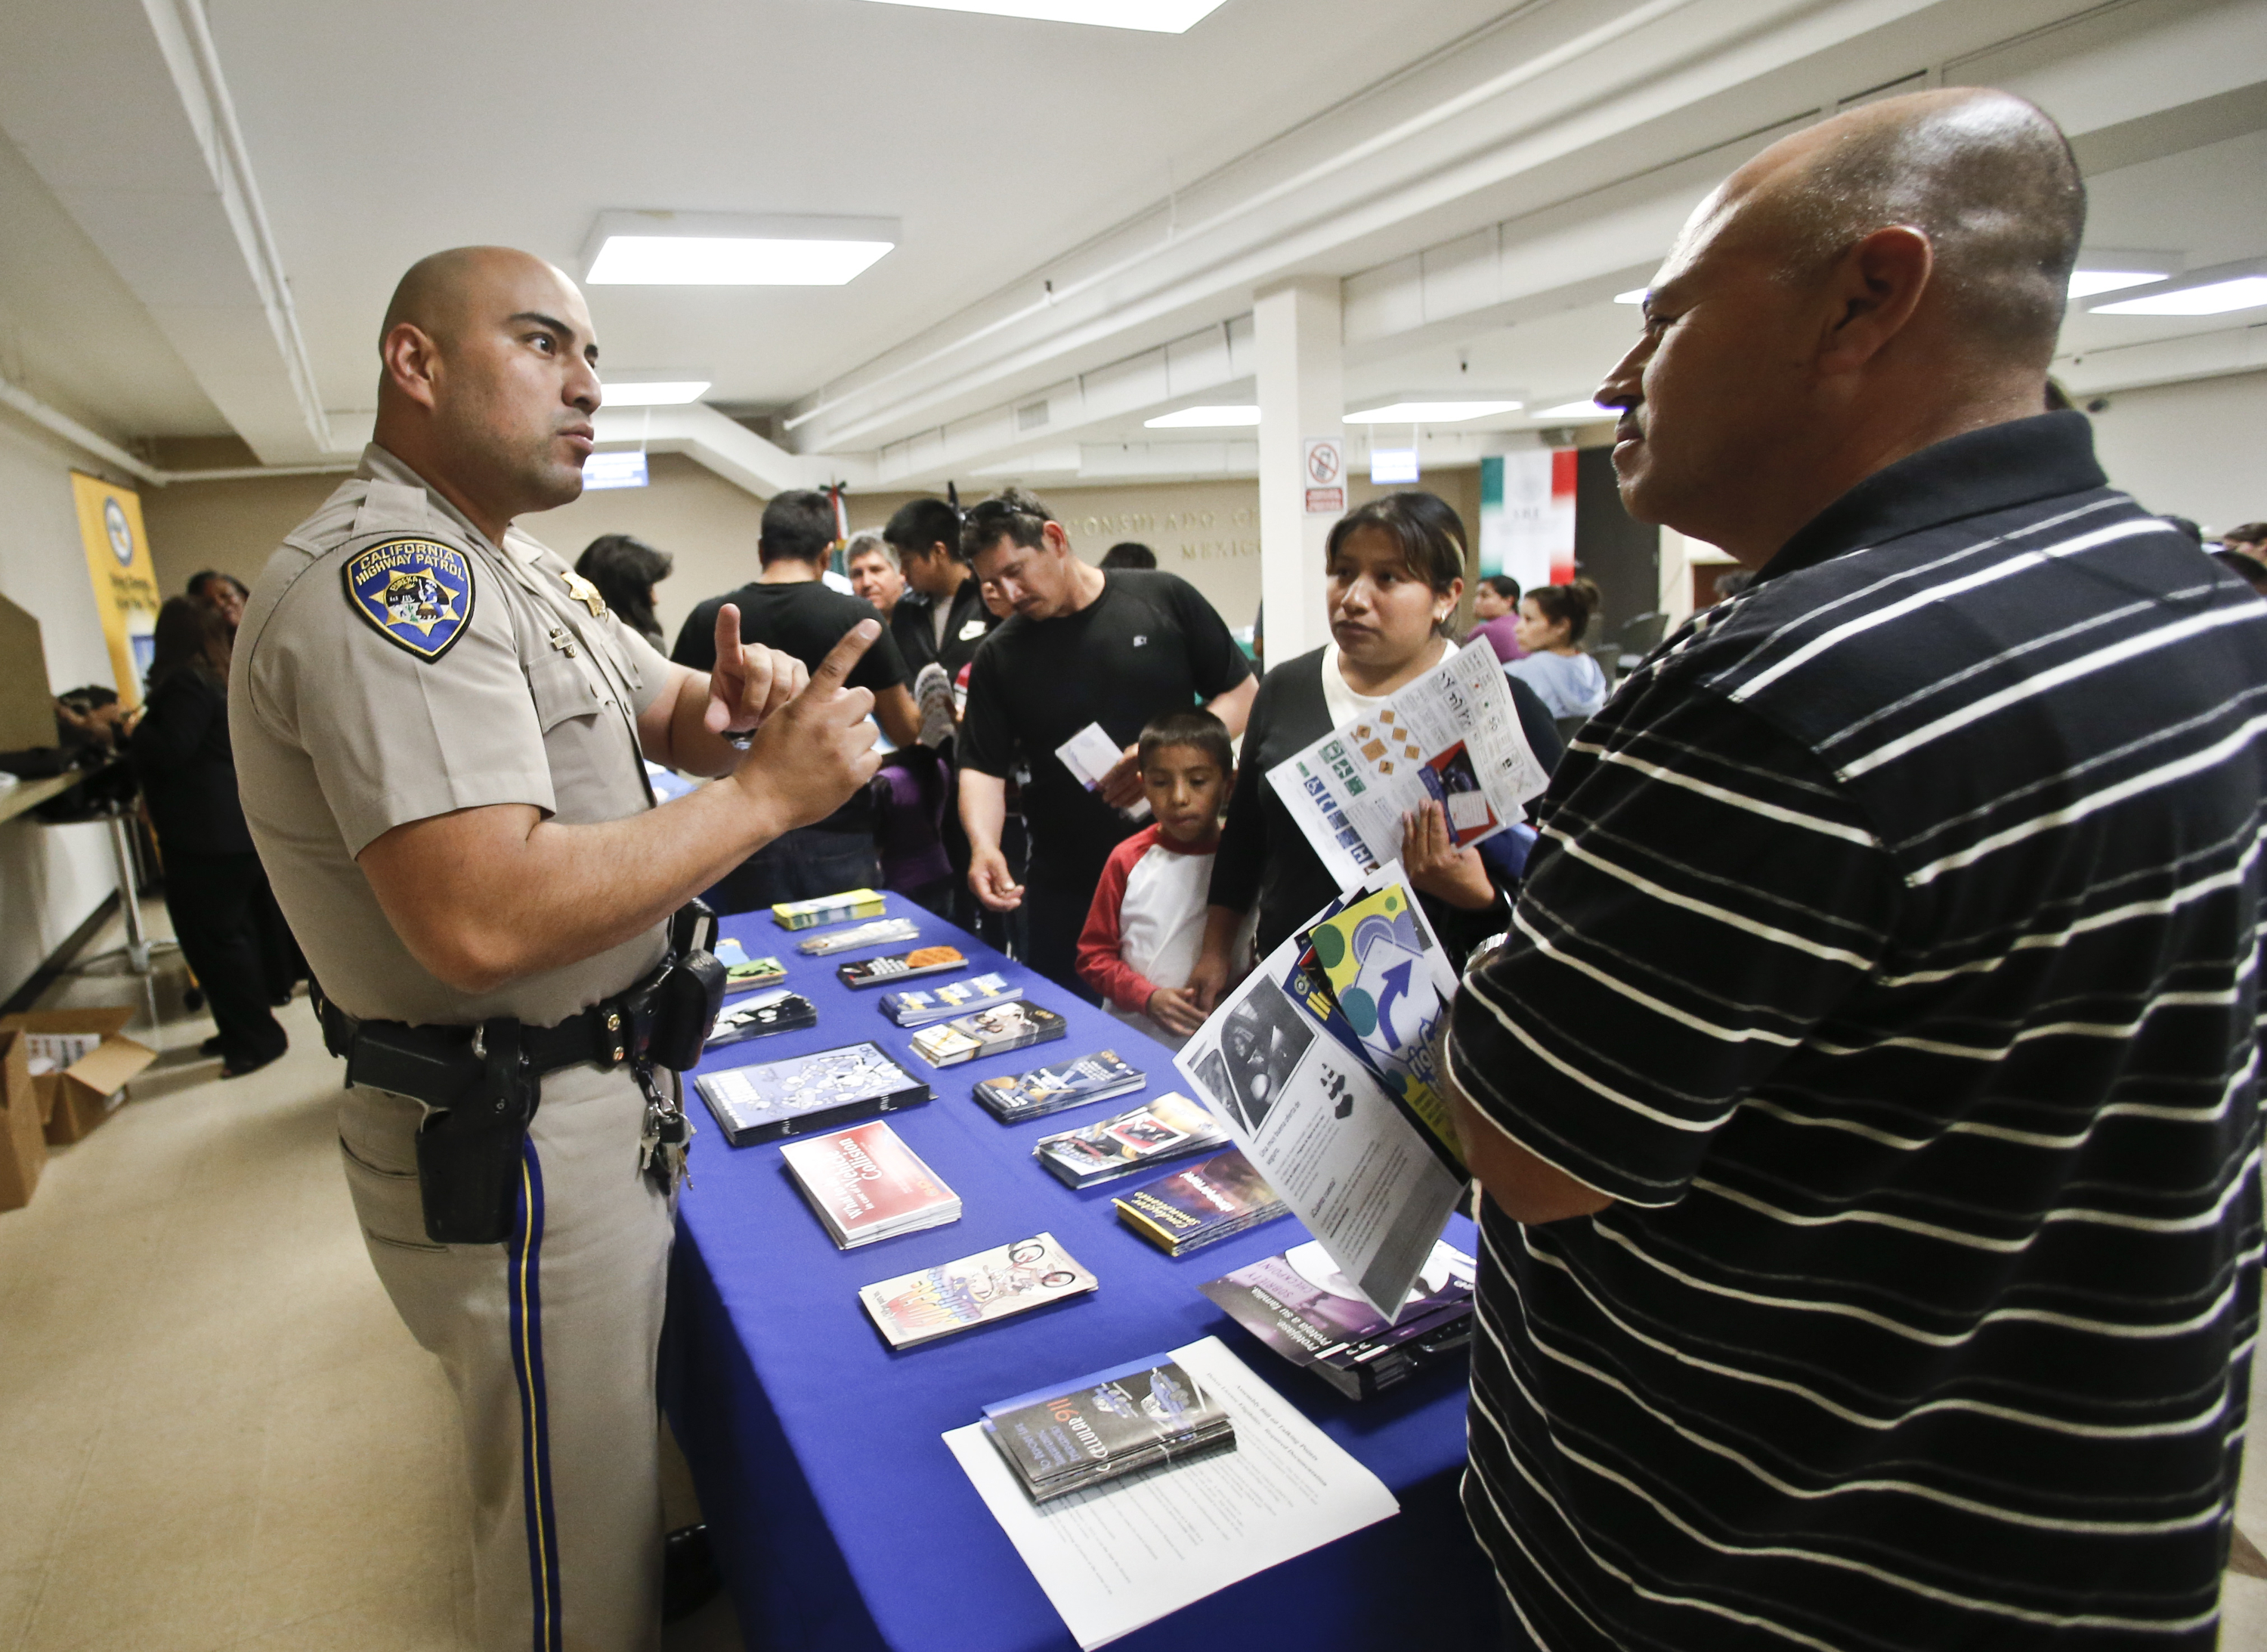 California Highway Patrol officer Armando Garcia explains to immigrants the process of getting a drivers license during an information session at the Mexican Consulate, in San Diego. Photo by Lenny Ignelz, AP The San Francisco News